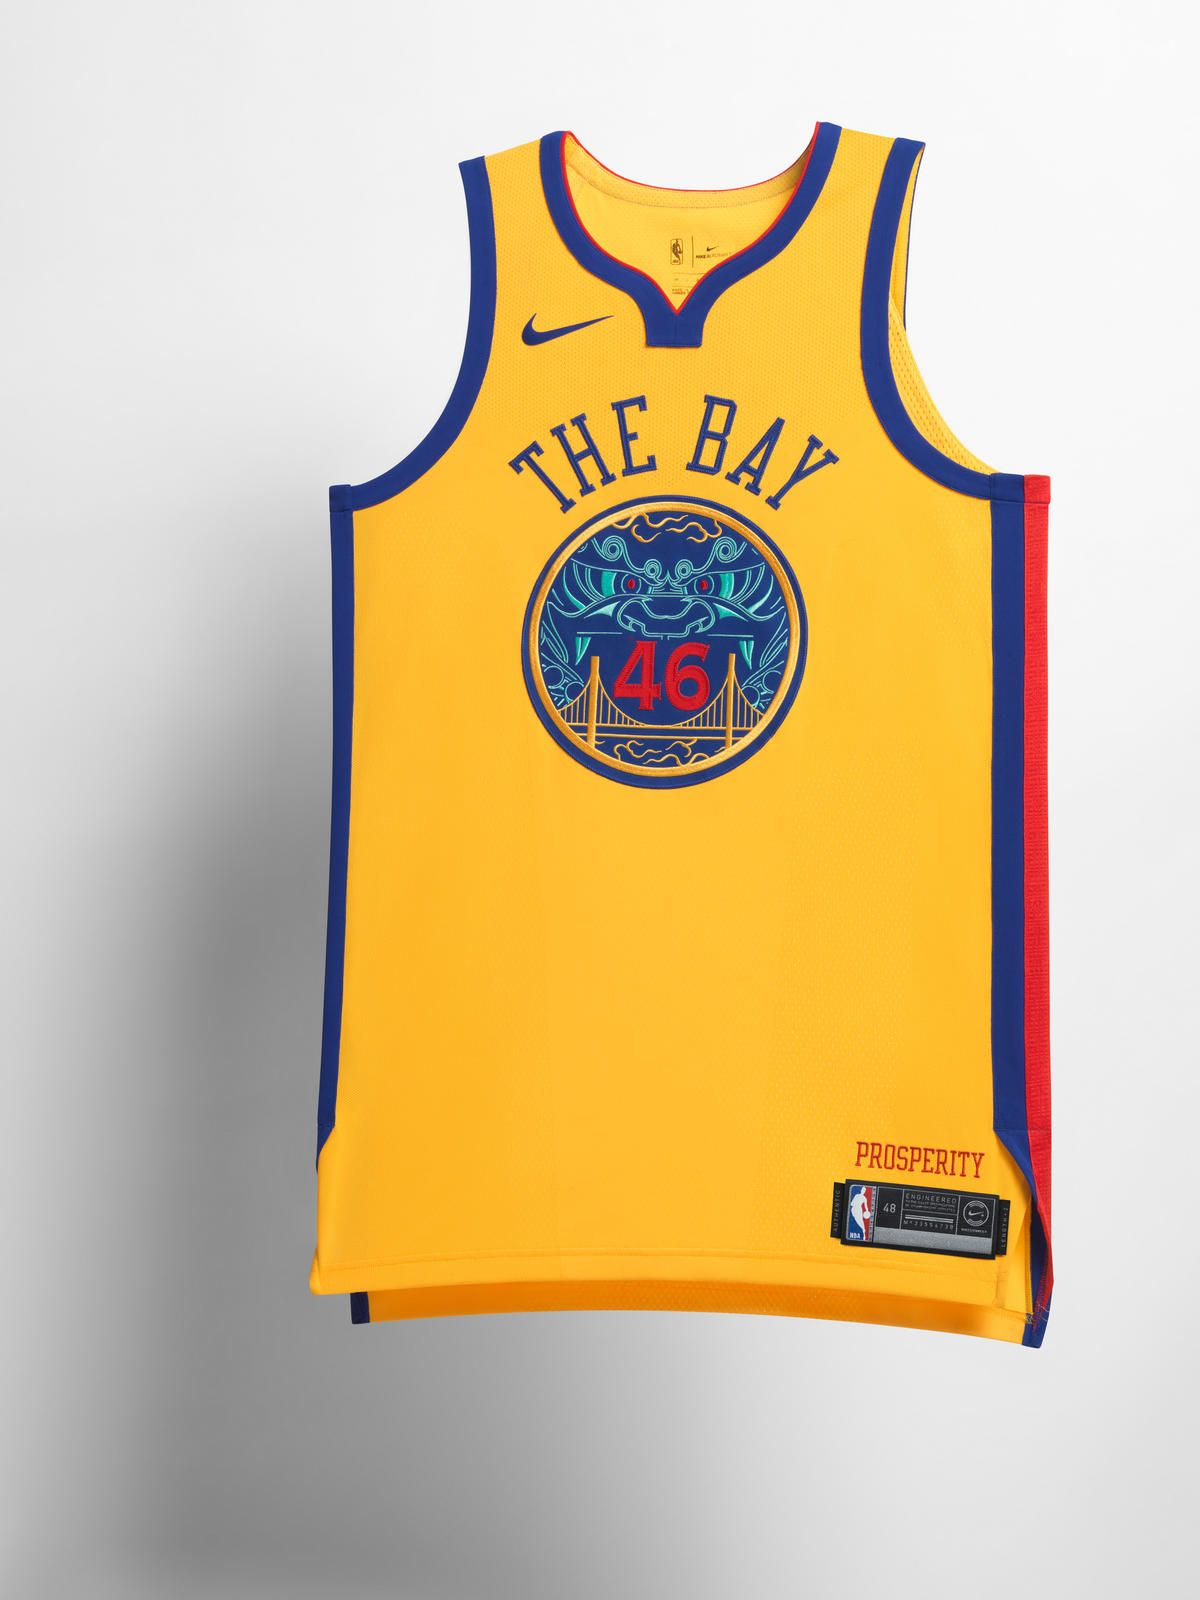 667a0c9de60 Nike s new NBA uniforms are here. Some of them are good. Some of them are  bad.